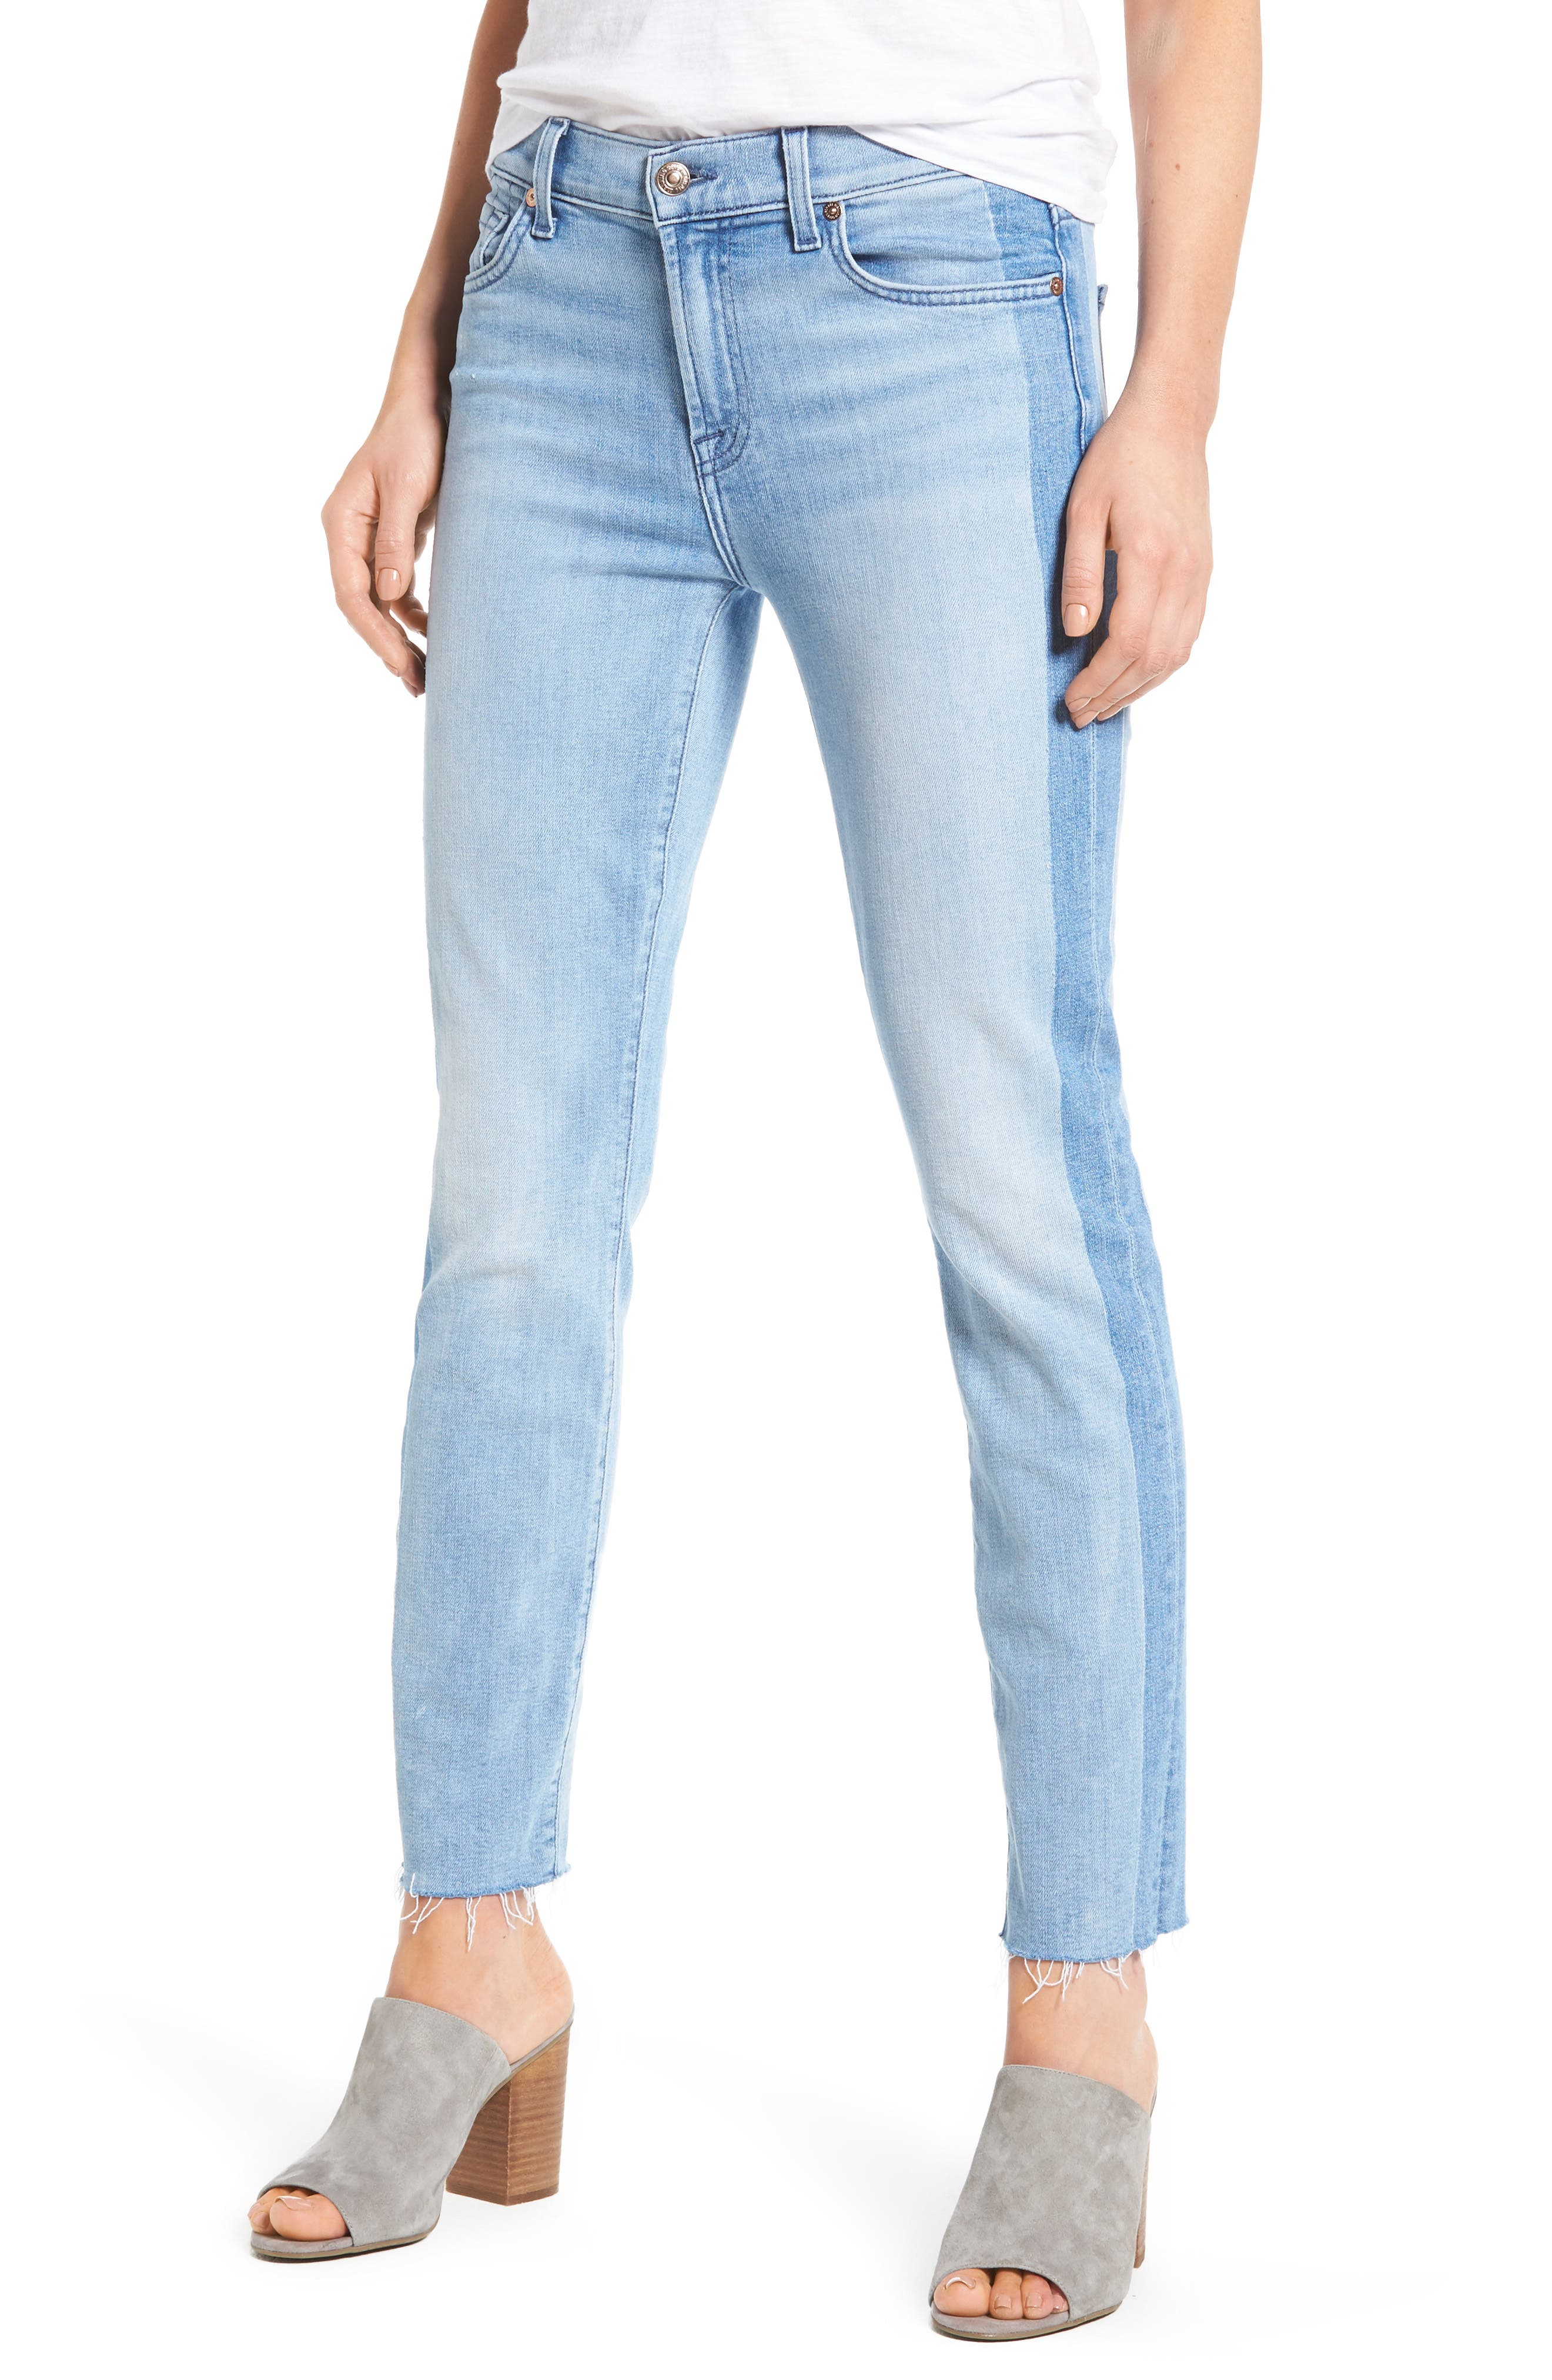 Alternate Image 1 Selected - 7 For All Mankind® Roxanne Original Ankle Skinny Jeans (Bright Chelsea)